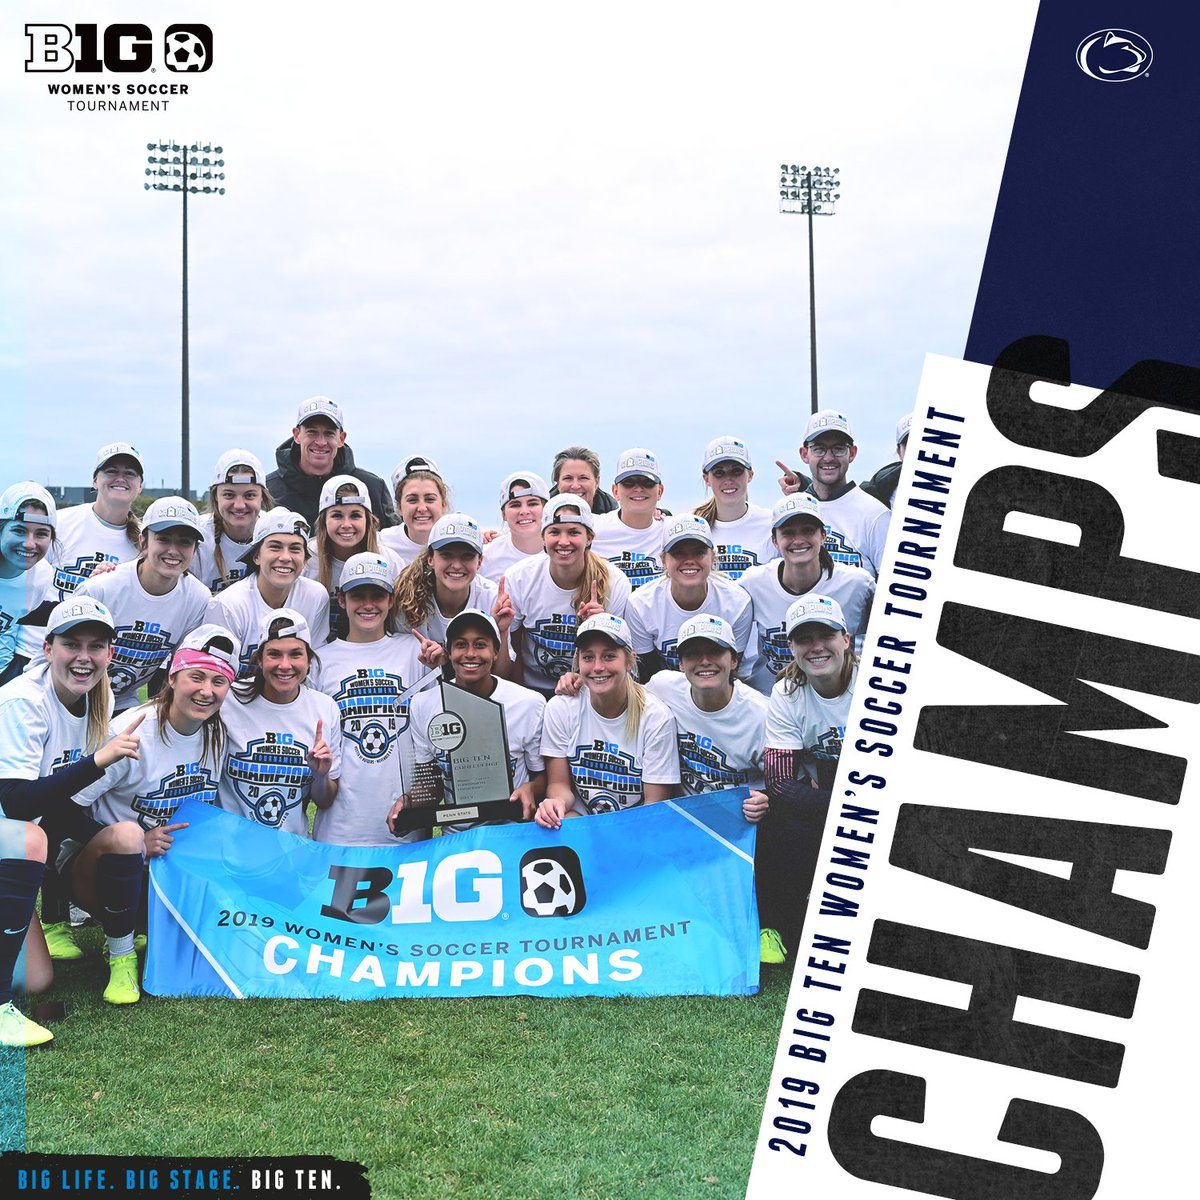 Congratulations to the 2019 #B1GWSOC Tournament champion, @PennStateWSOC … for more on this years tournament, including box scores, recaps, photos and the official tournament program, visit the Tournament Central web site at bigten.org/wsoc